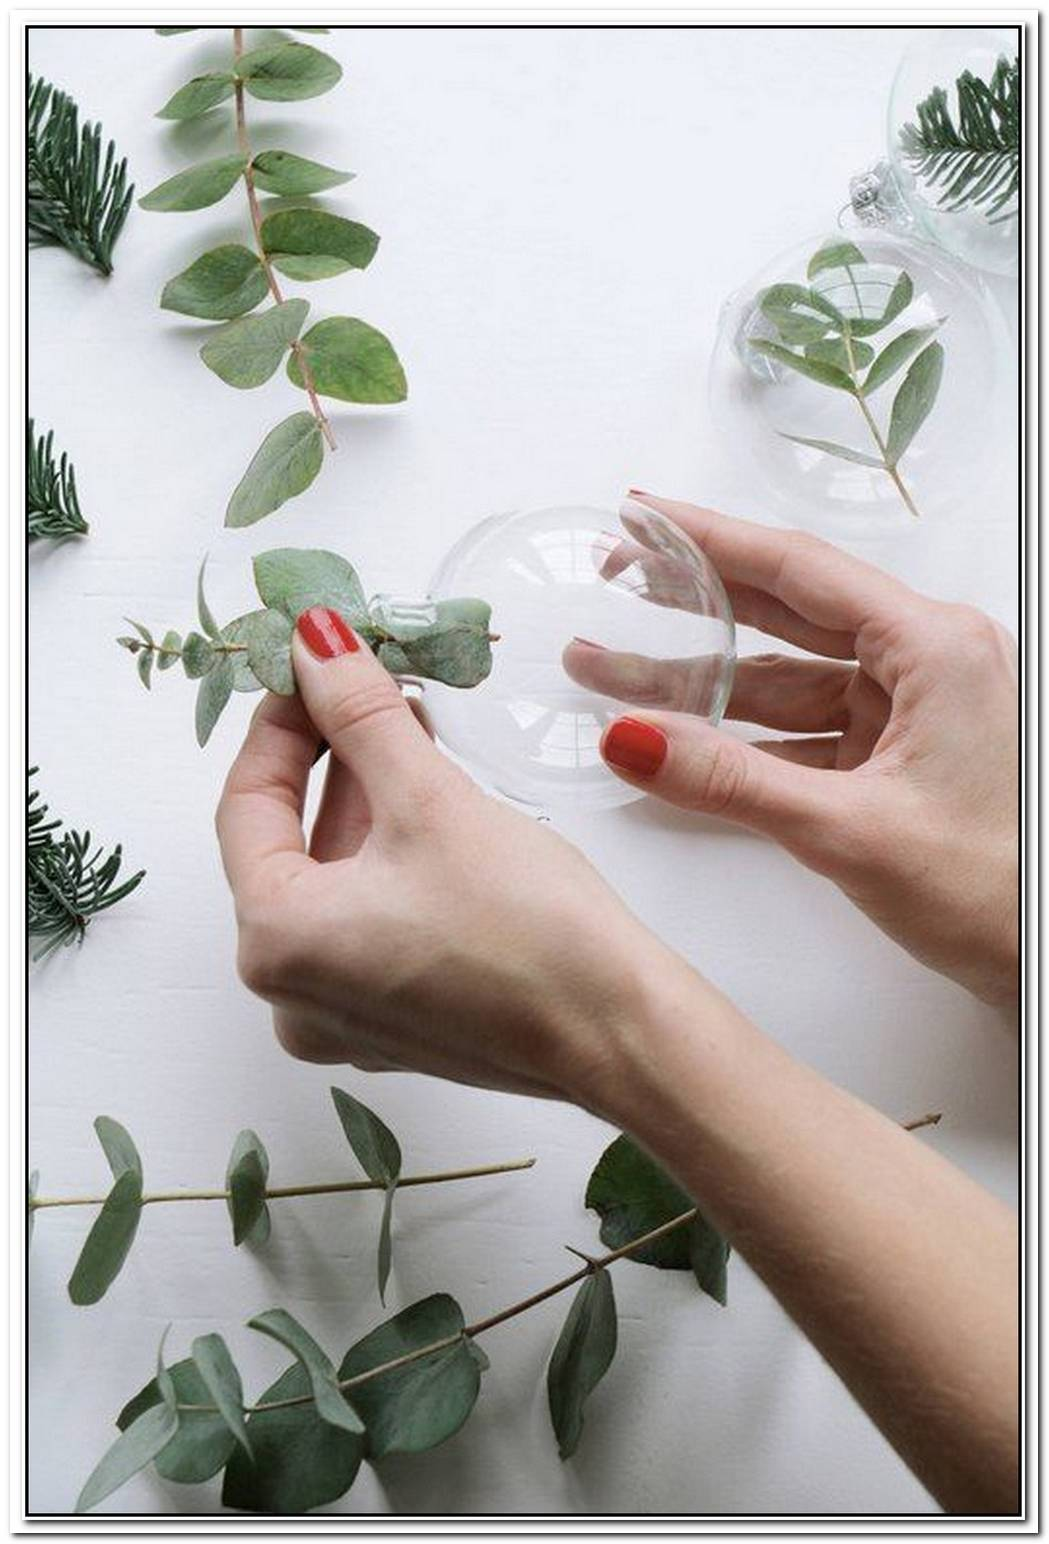 10 Perfectly Simple Holiday Ideas & DIYs We Adore